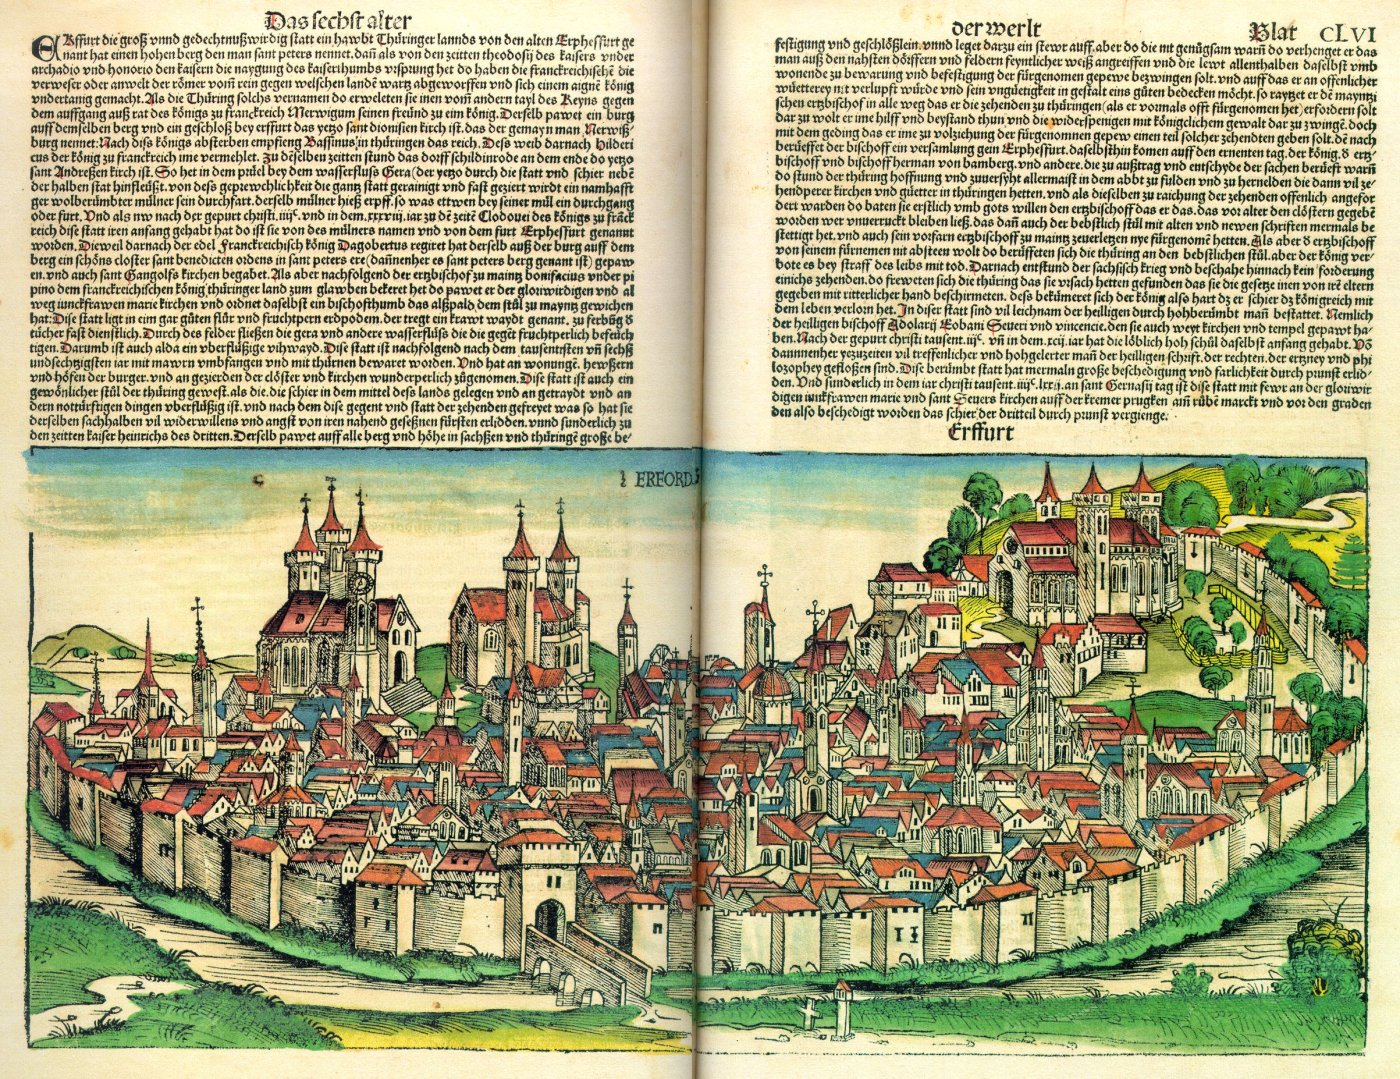 1450 To 1500 Timeline Reed Switch Wikipedia The Free Encyclopedia Library Of Hartmann Schedel One Largest Libraries Formed By An Individual In 15th Century 1571